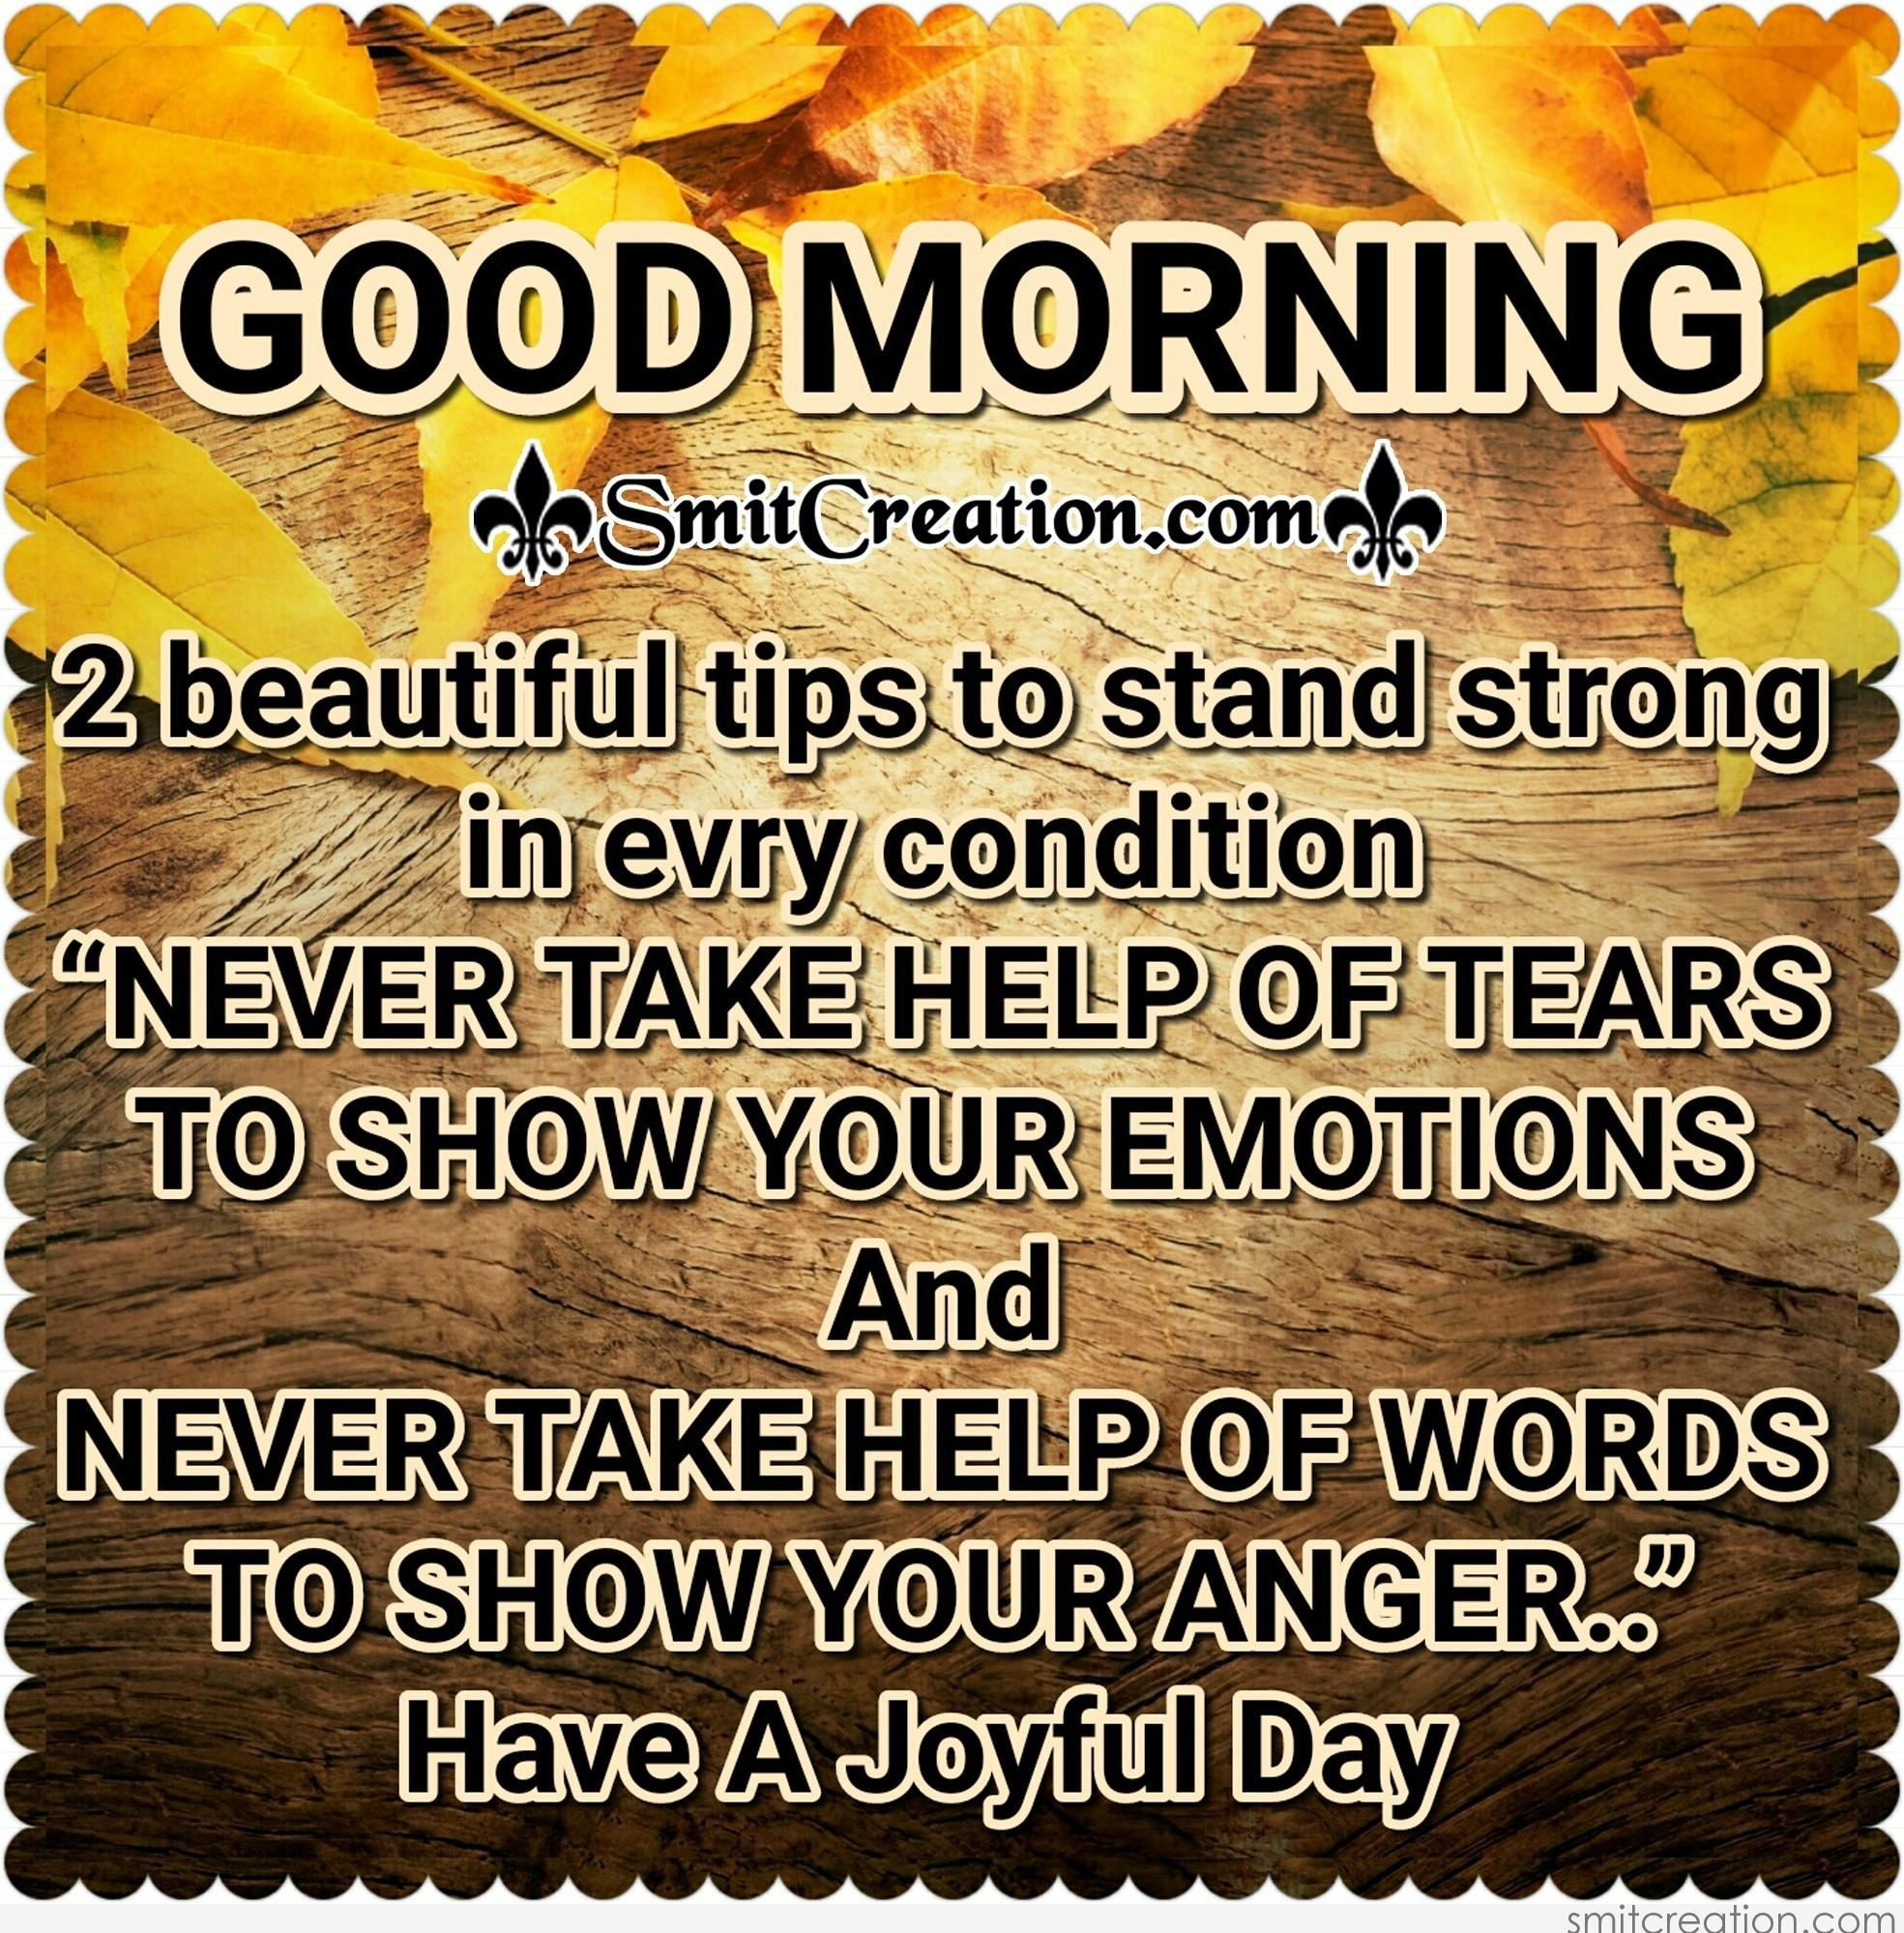 Good Morning Zombie Tips : Good morning beautiful tips to stand strong in every